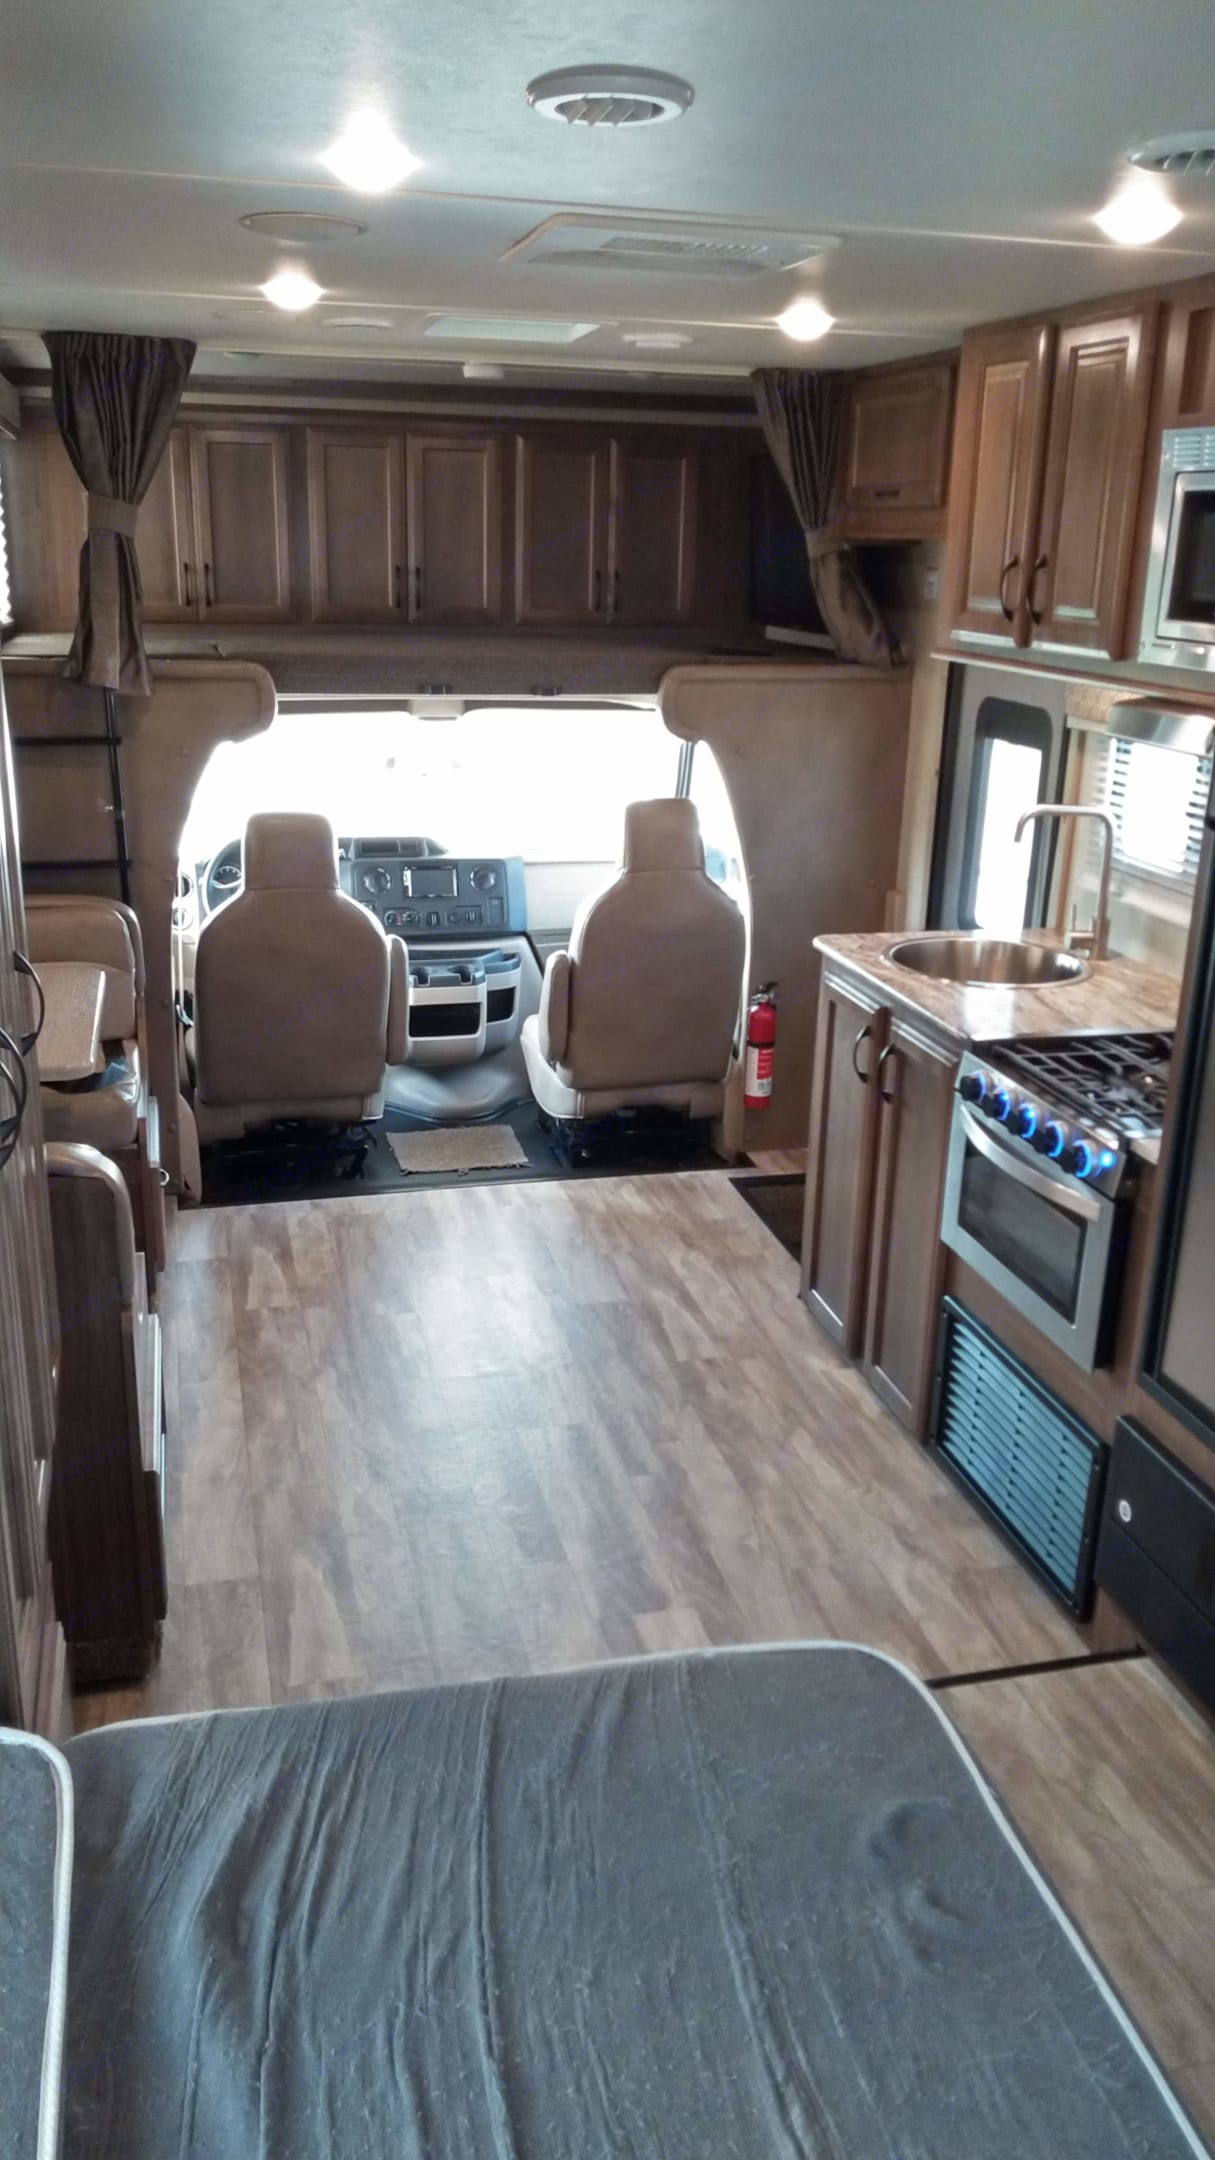 Spacious inter with full wall slide. Gulf Stream Conquest 2019